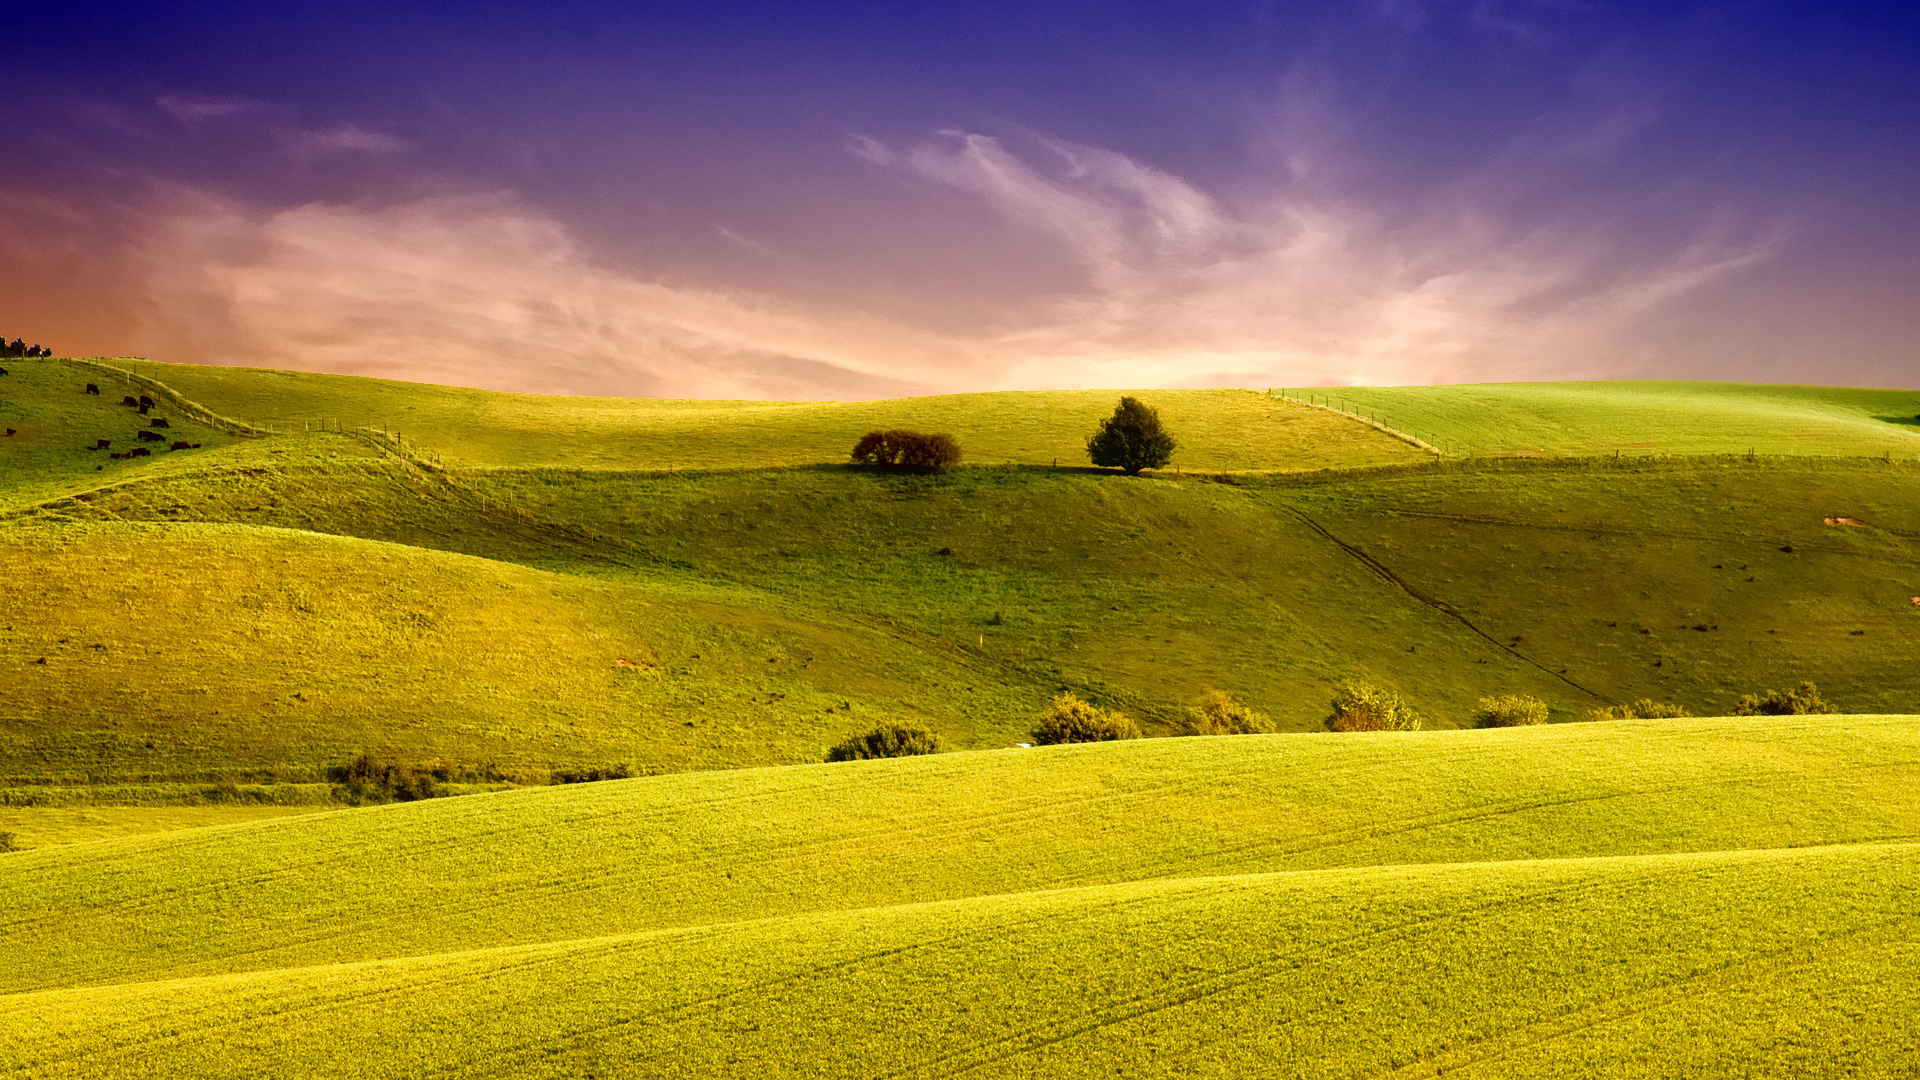 41 Green Green Meadow Wallpapers On Wallpapersafari Images, Photos, Reviews